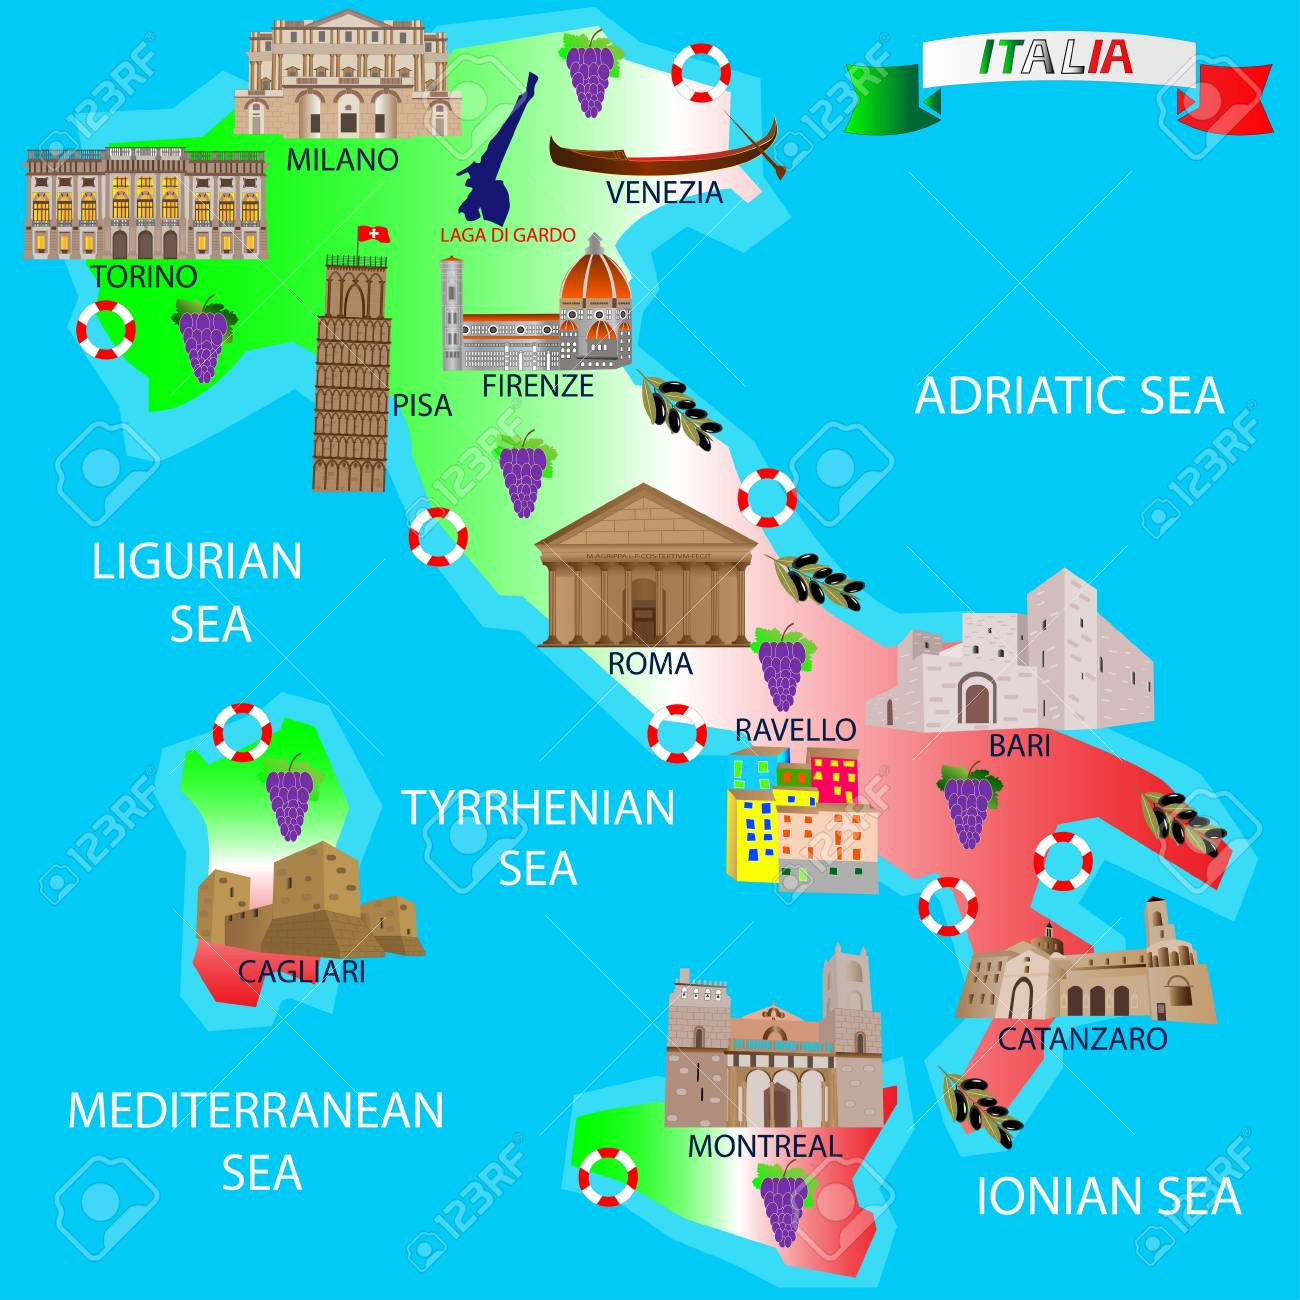 Map of Italy for tourists. Architectural monuments Map If Italy on map of croatia, map of turkey, map of czech republic, turin italy, florence italy, map of amalfi coast, map of roman empire, map of slovenia, palermo italy, rome italy, map of venice, map of pompeii, map of southern europe, map of tunisia, bari italy, milan italy, italy flag, map of hungary, map of tuscany, modena italy, italy weather, map of malta, map of mediterranean, map of norway, map of cyprus, bologna italy, genova italy, venice italy, map of yemen, verona italy, italy travel, map of sweden, lake como italy, map of united states, naples italy, italy tourism, pisa italy,